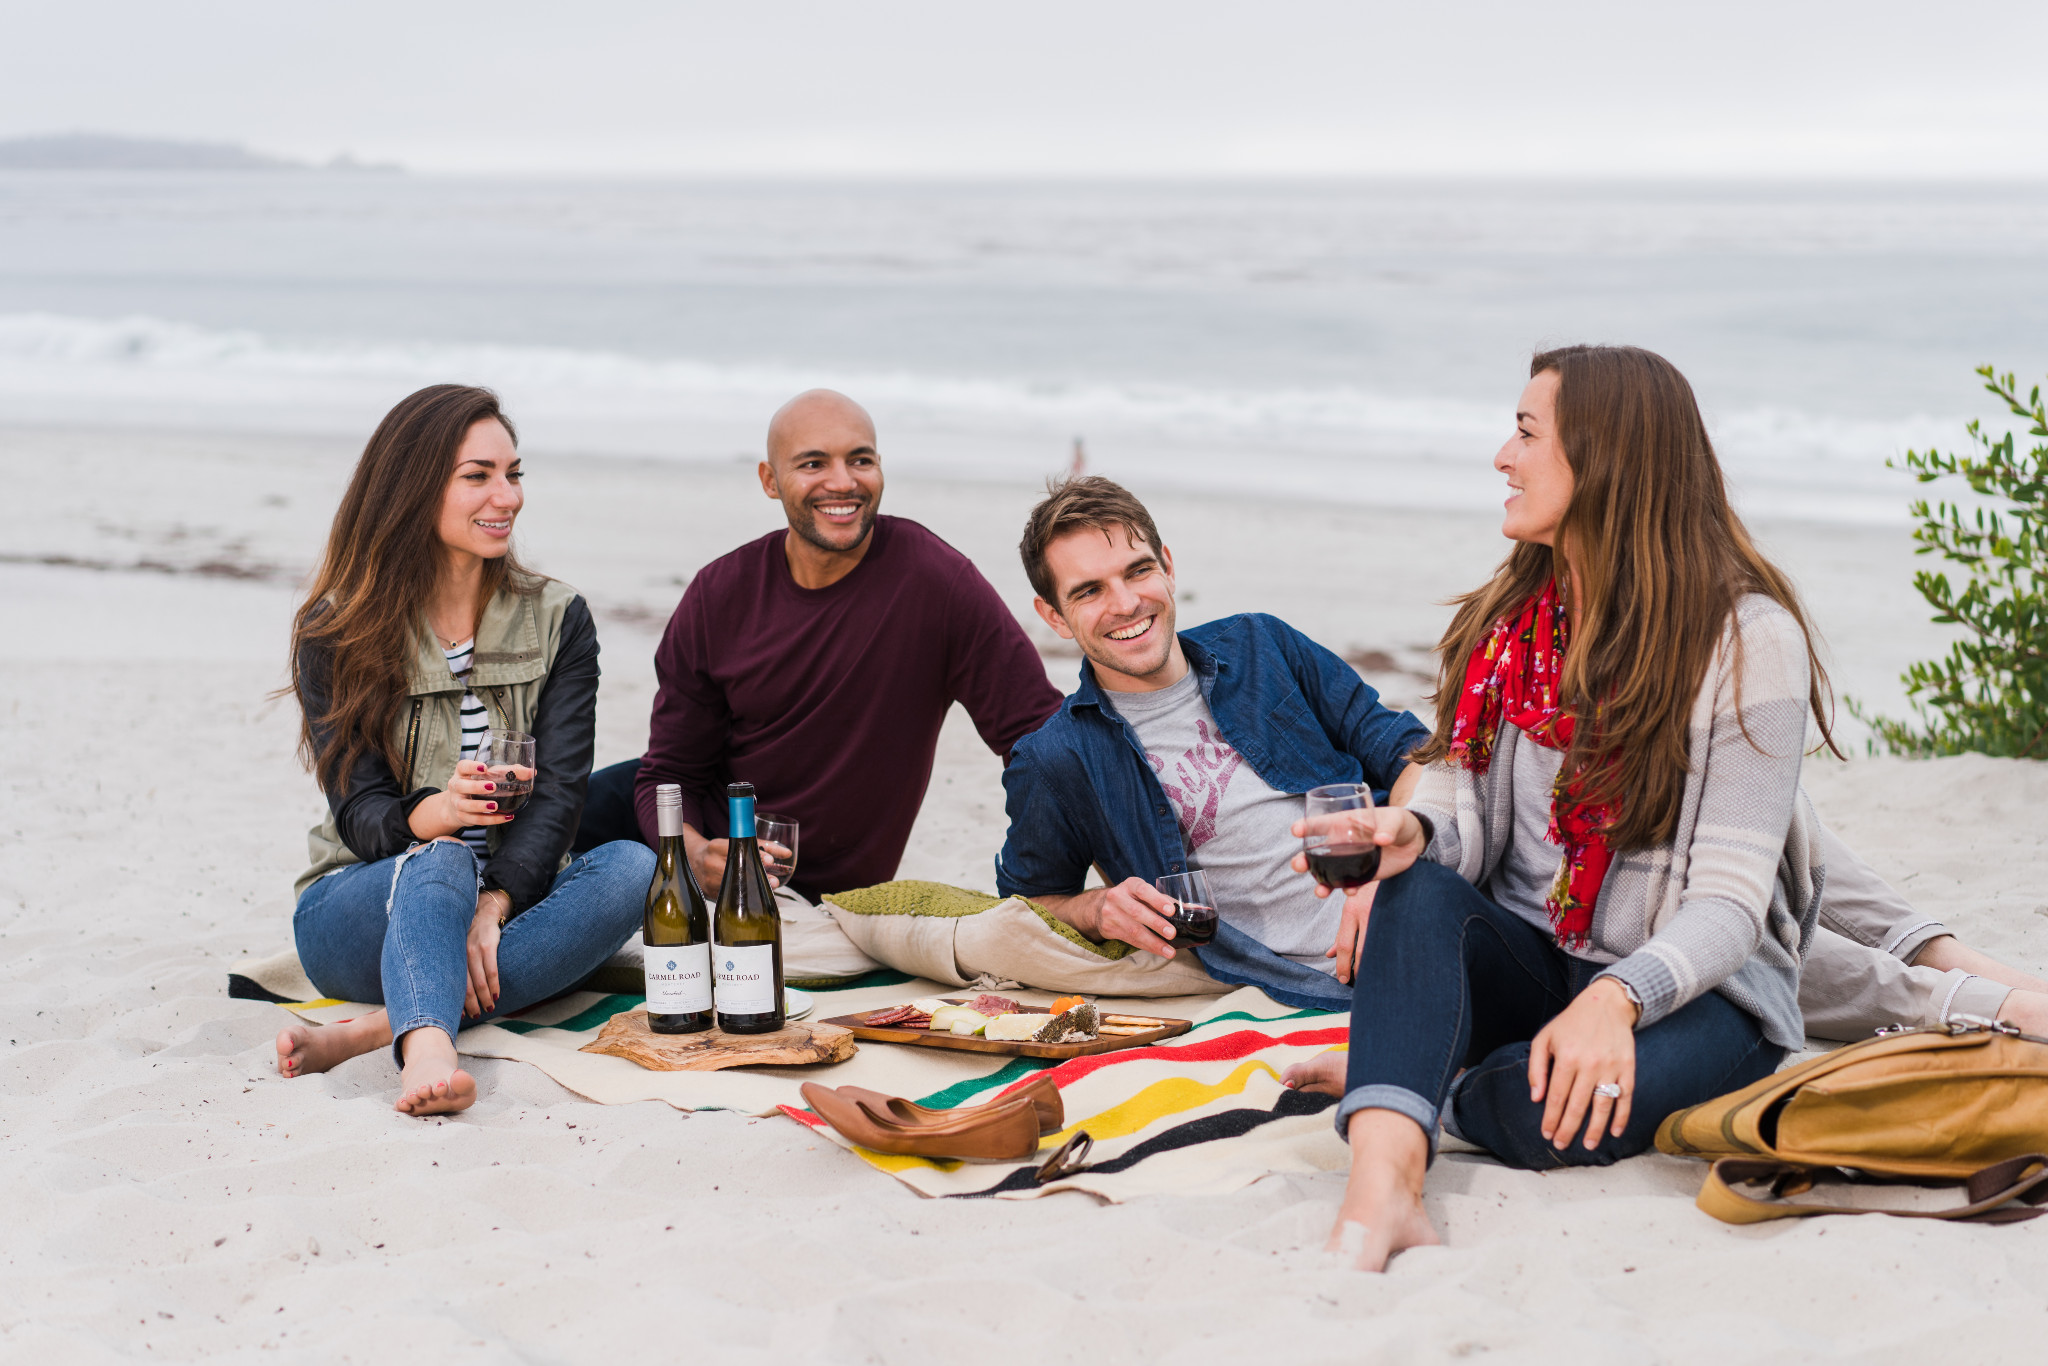 Beach picnic with friends